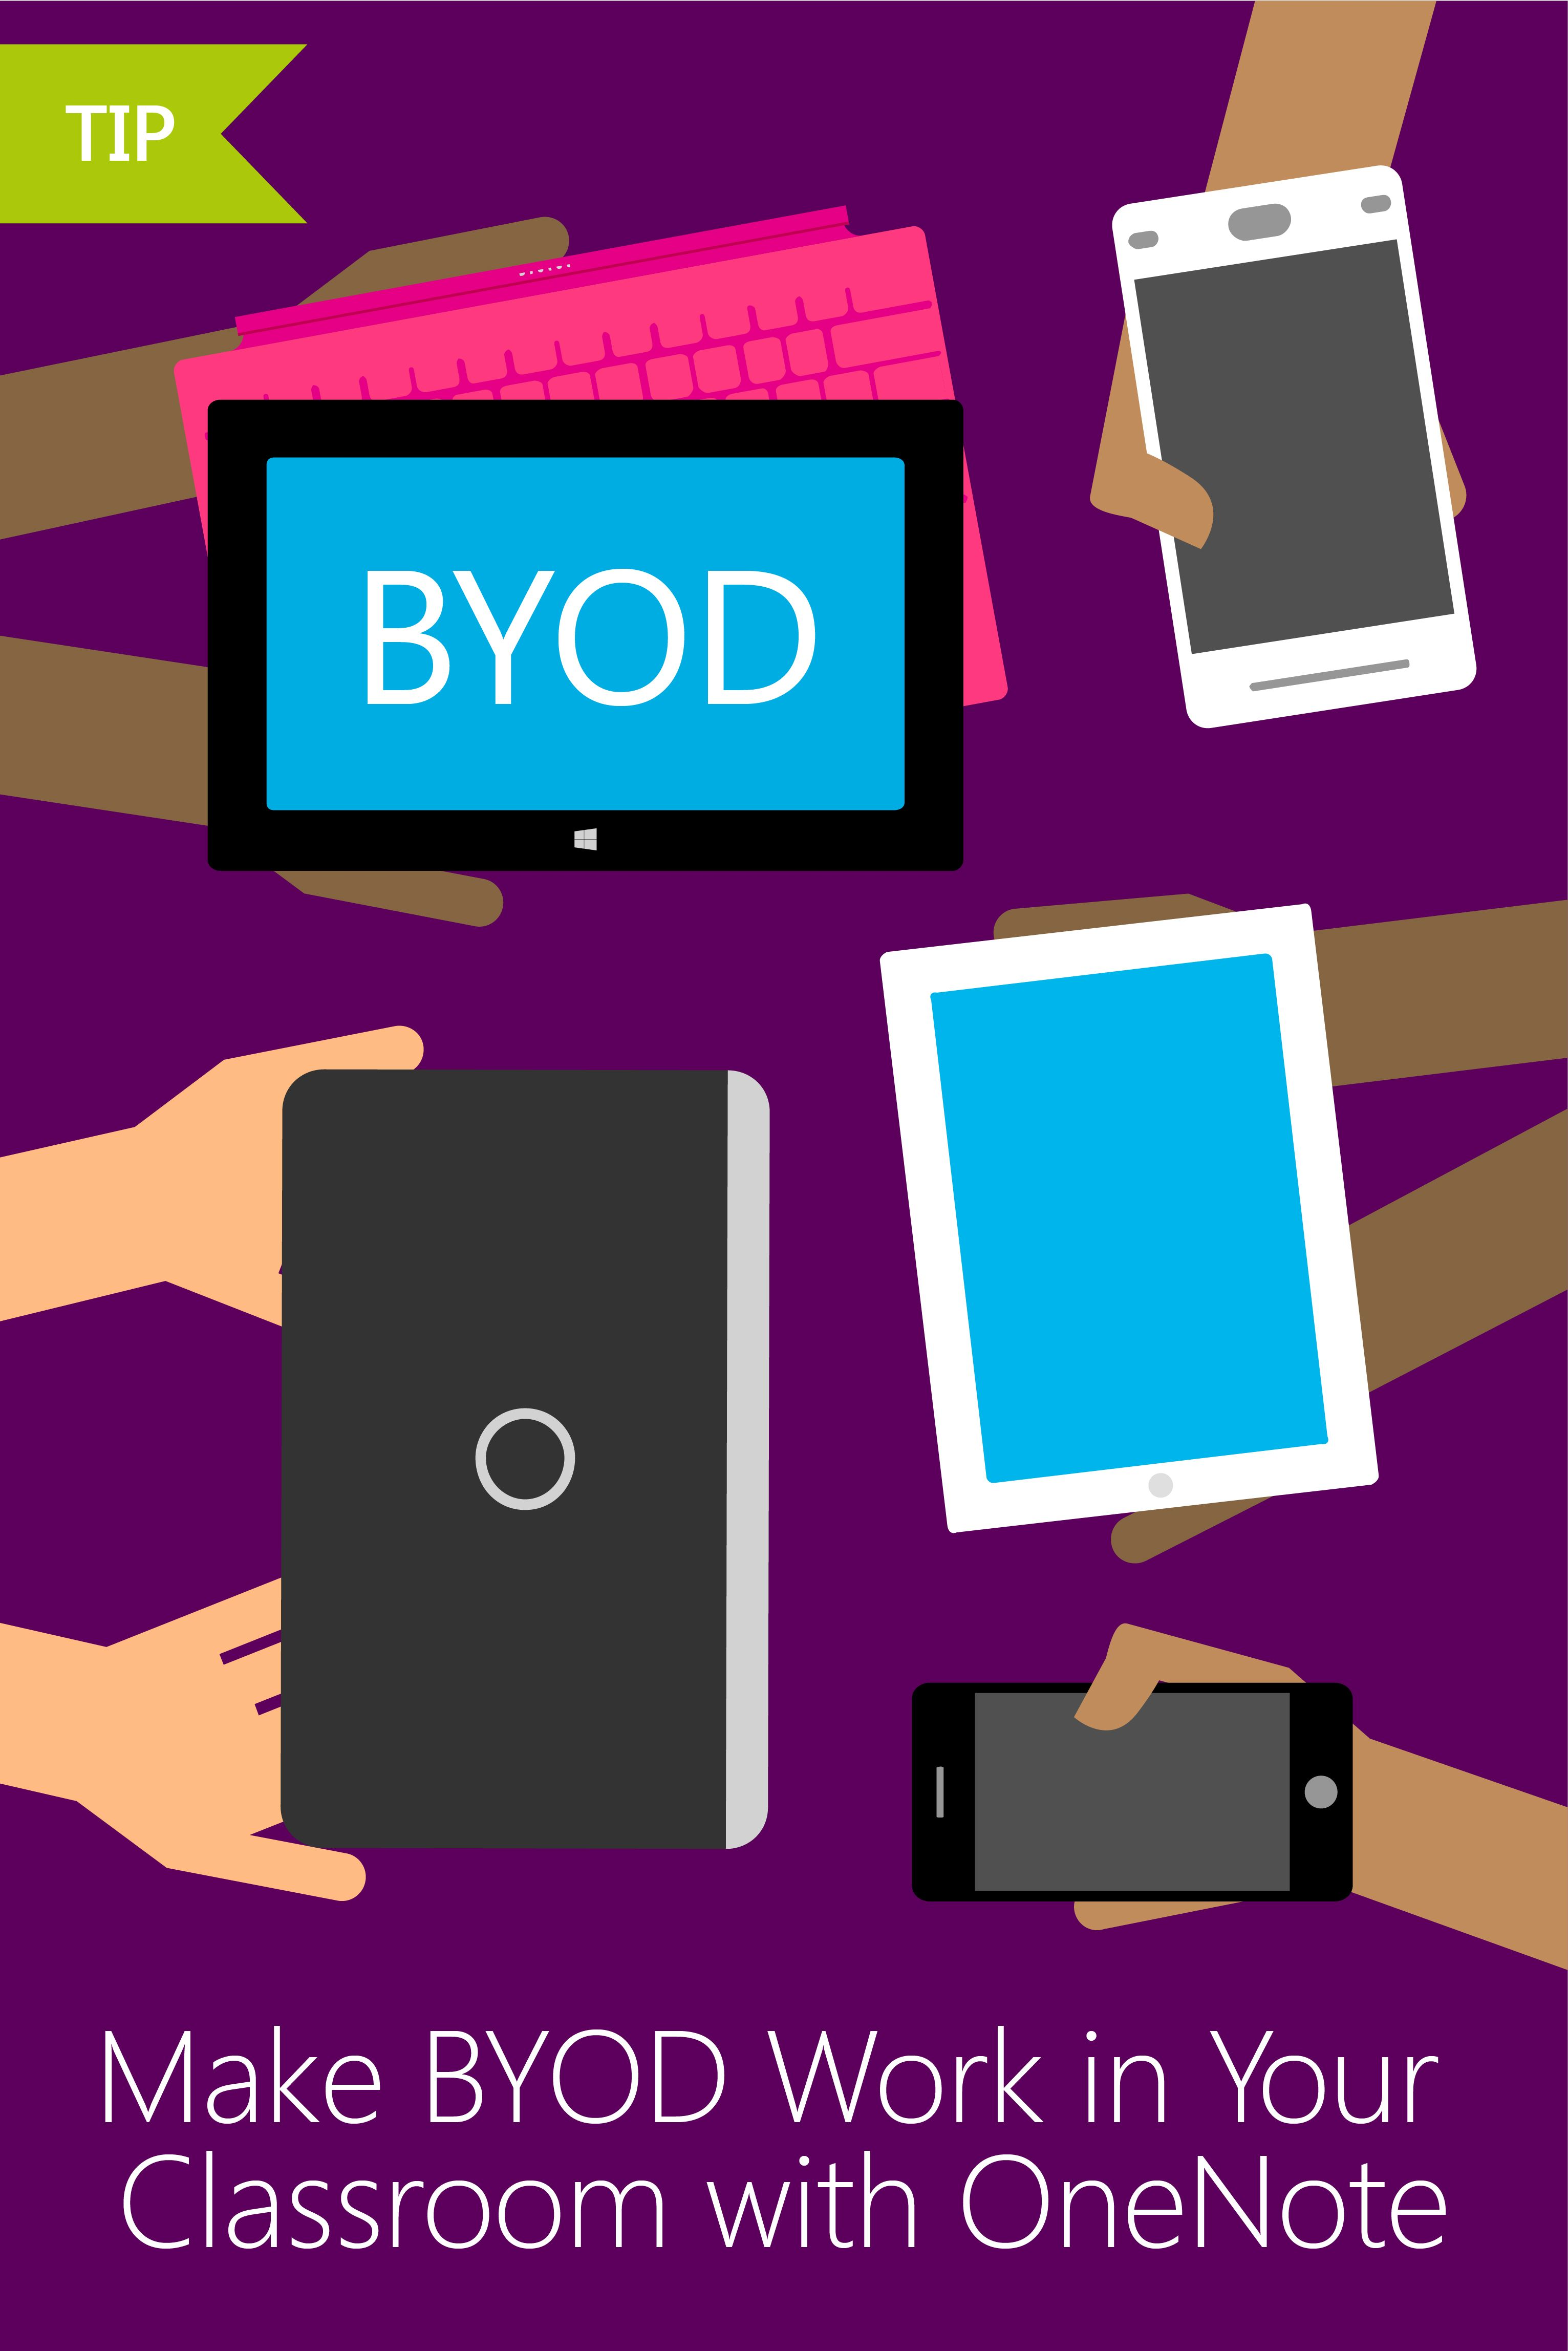 Read Tips From A Real Educator On How Onenote Cl Notebooks Can Make Byod Work In